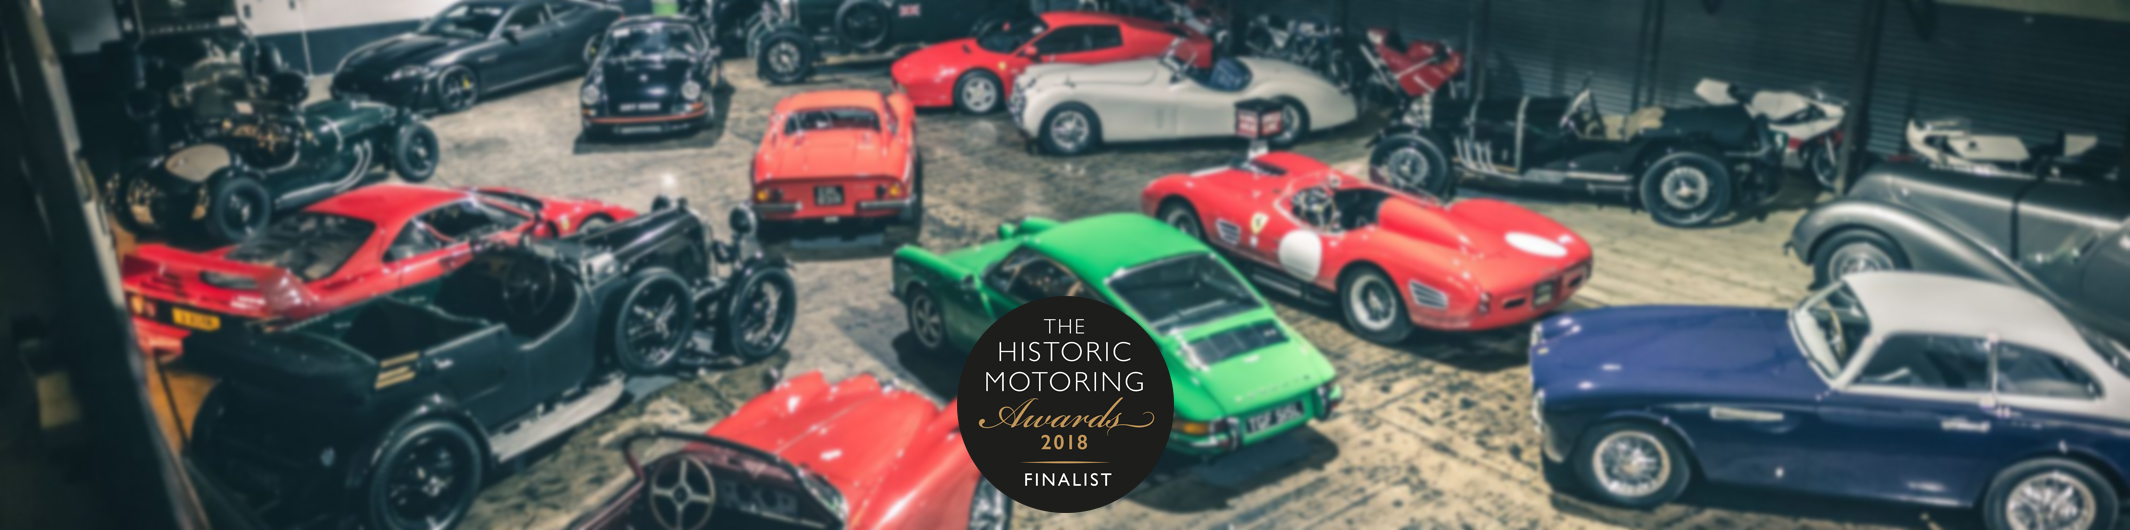 Pricing Classics - Expert Insight from The Classic Motor Hub